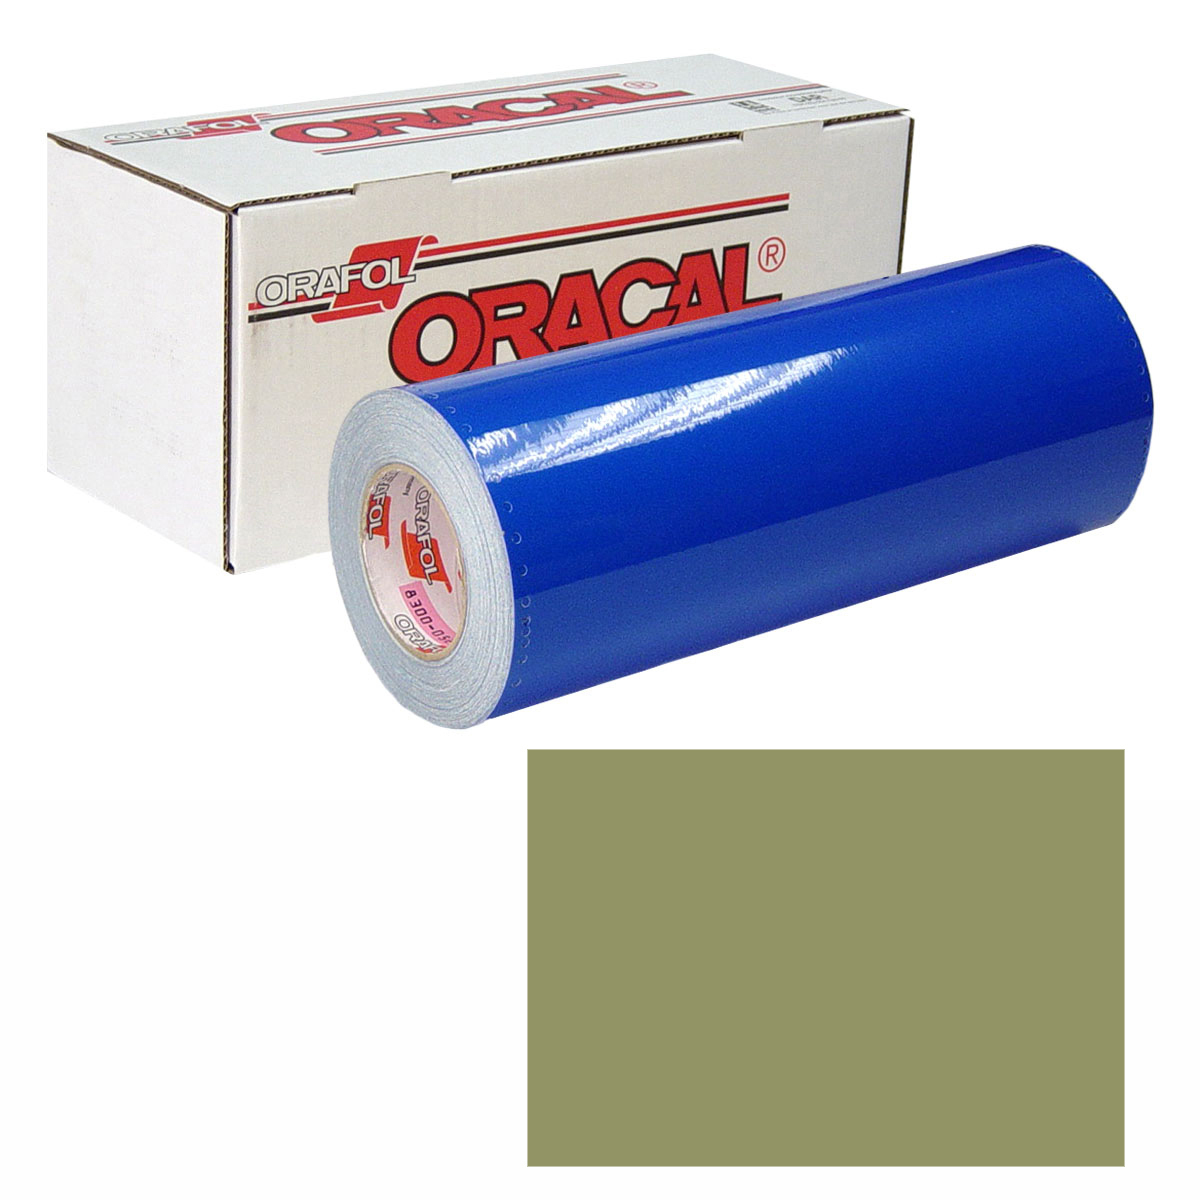 ORACAL 631 Unp 48In X 50Yd 493 Olive